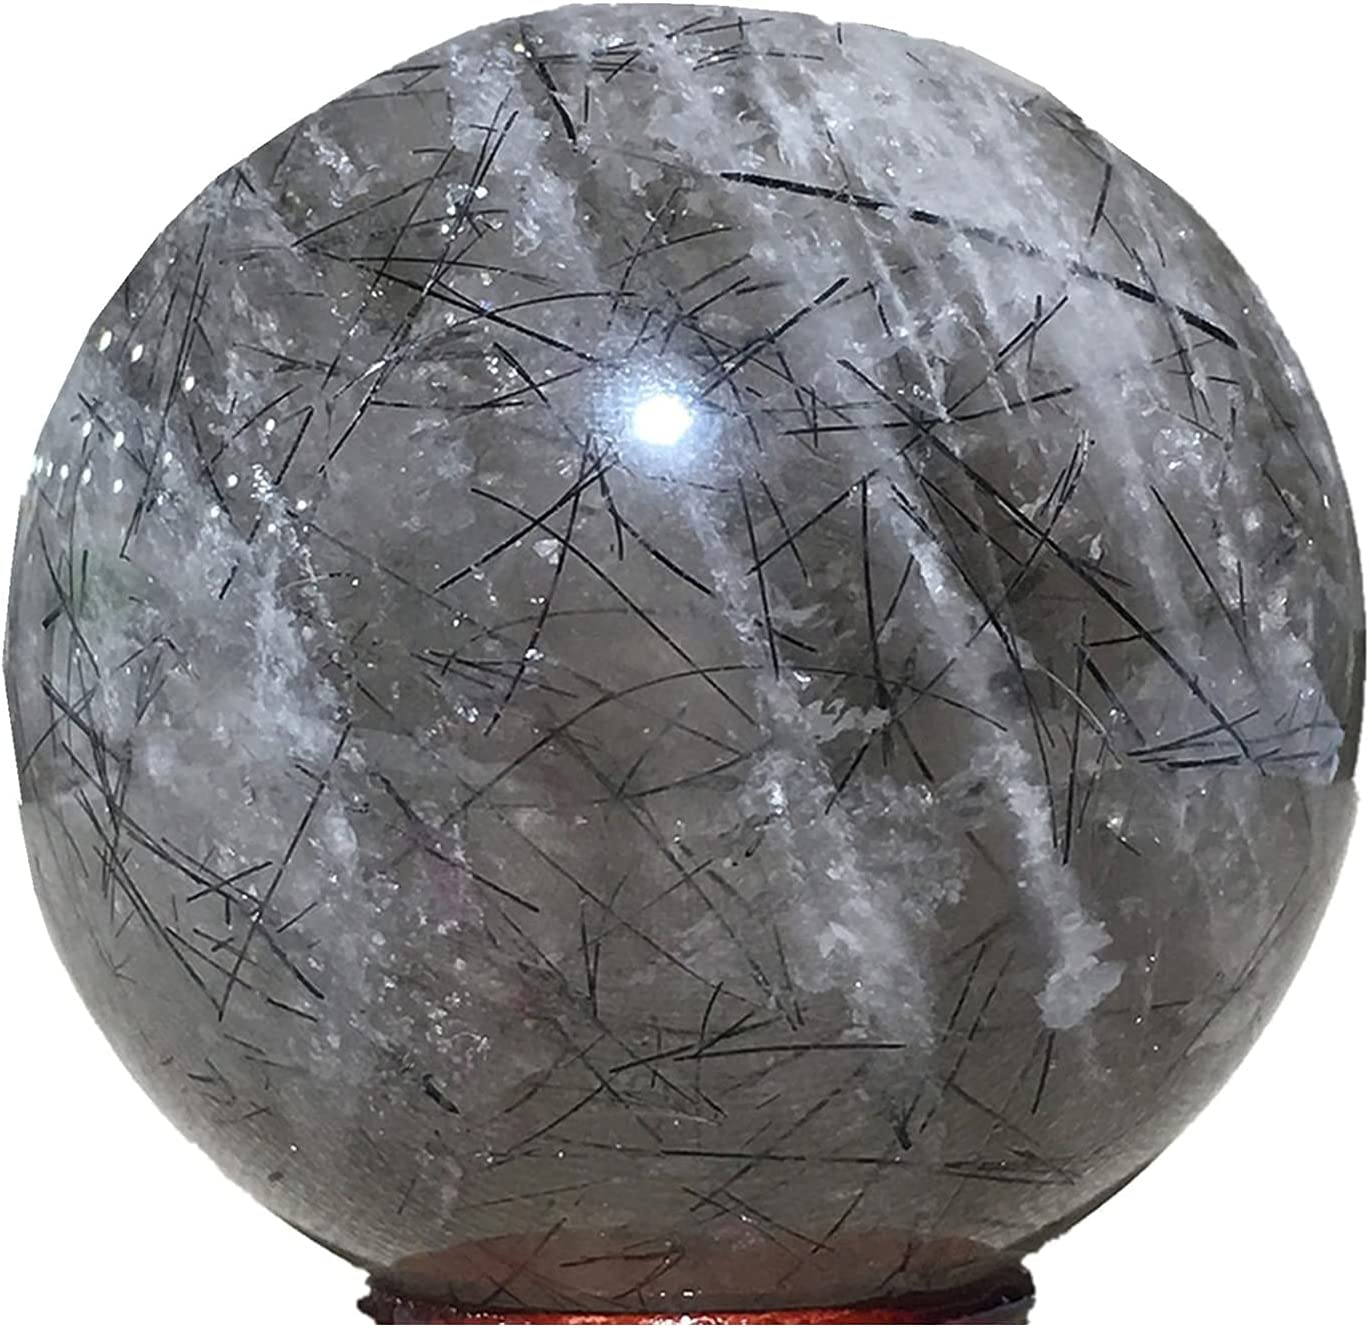 Free Shipping Cheap Bargain Gift Stones Natural Shipping included Sphere Tourmaline Crystal Furnishing Home We